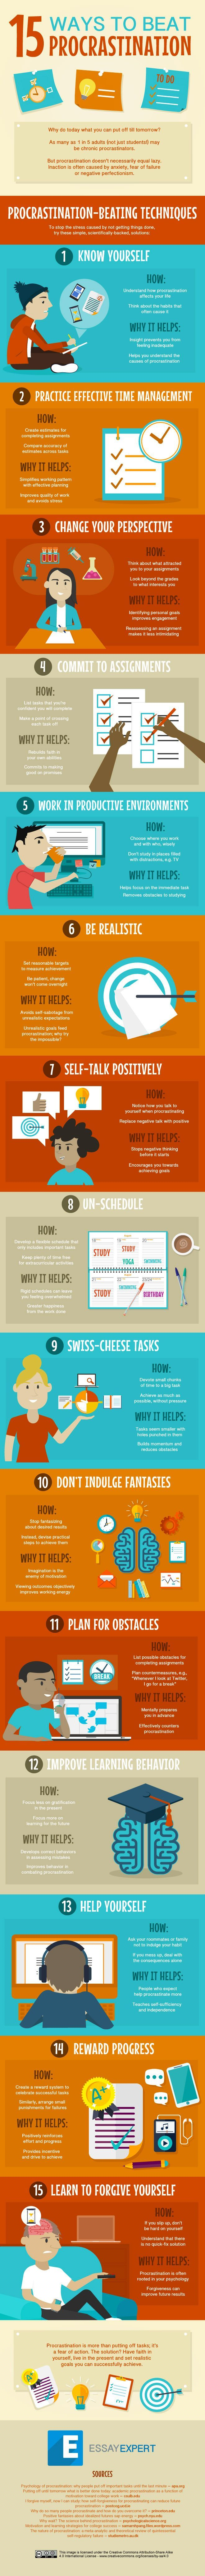 15 Ways to Beat Procrastination | http://www.inspiredva.com/15-ways-beat-procrastination/